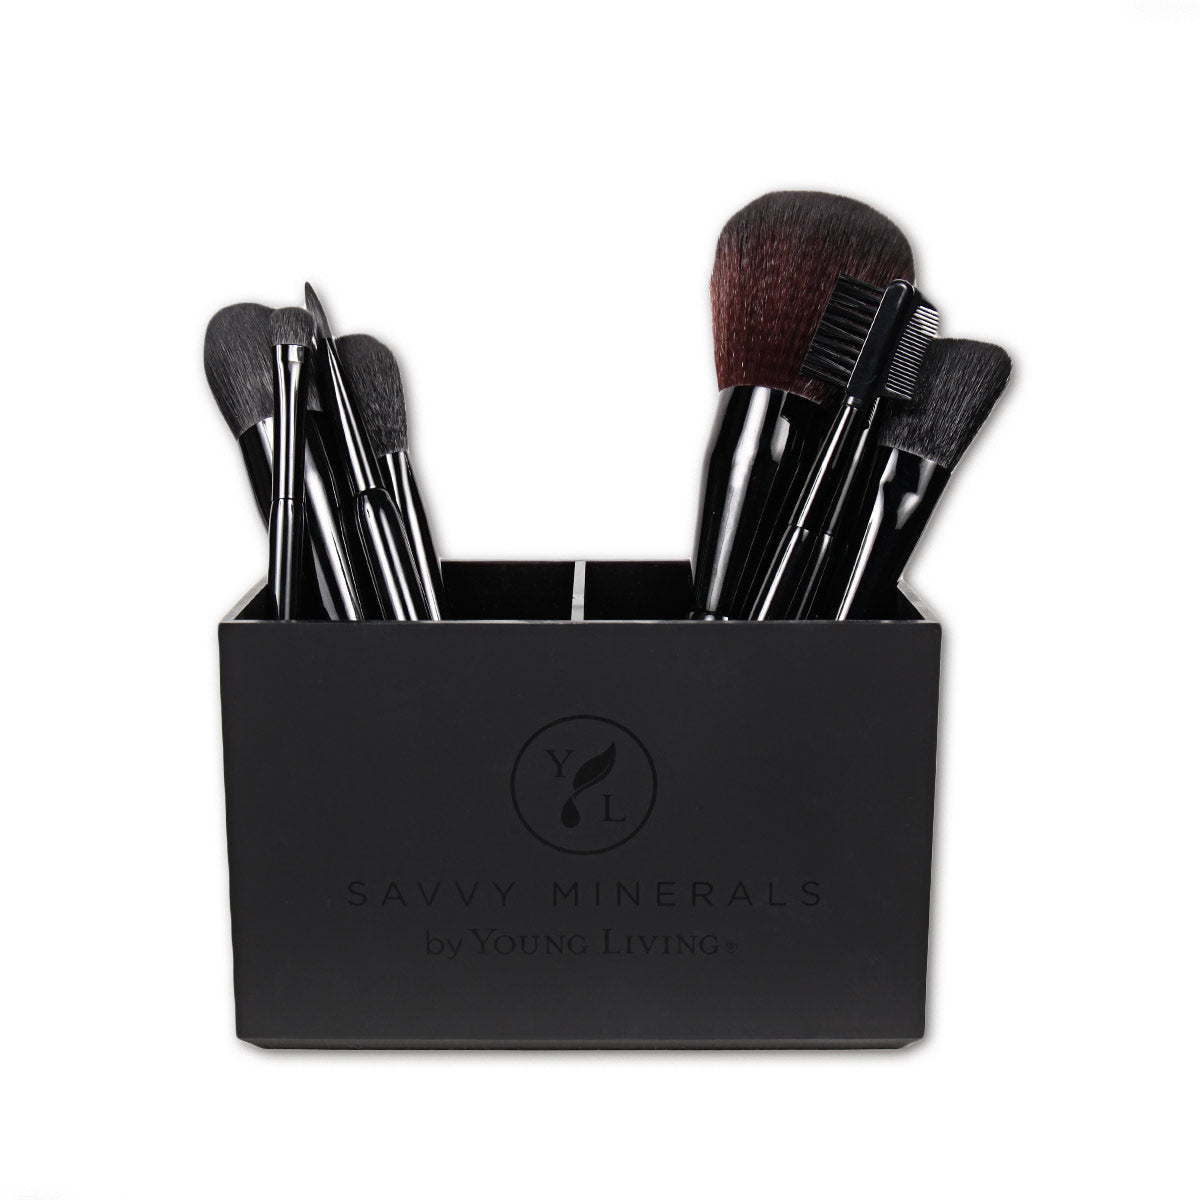 Savvy Minerals by Young Living® Brush Holder